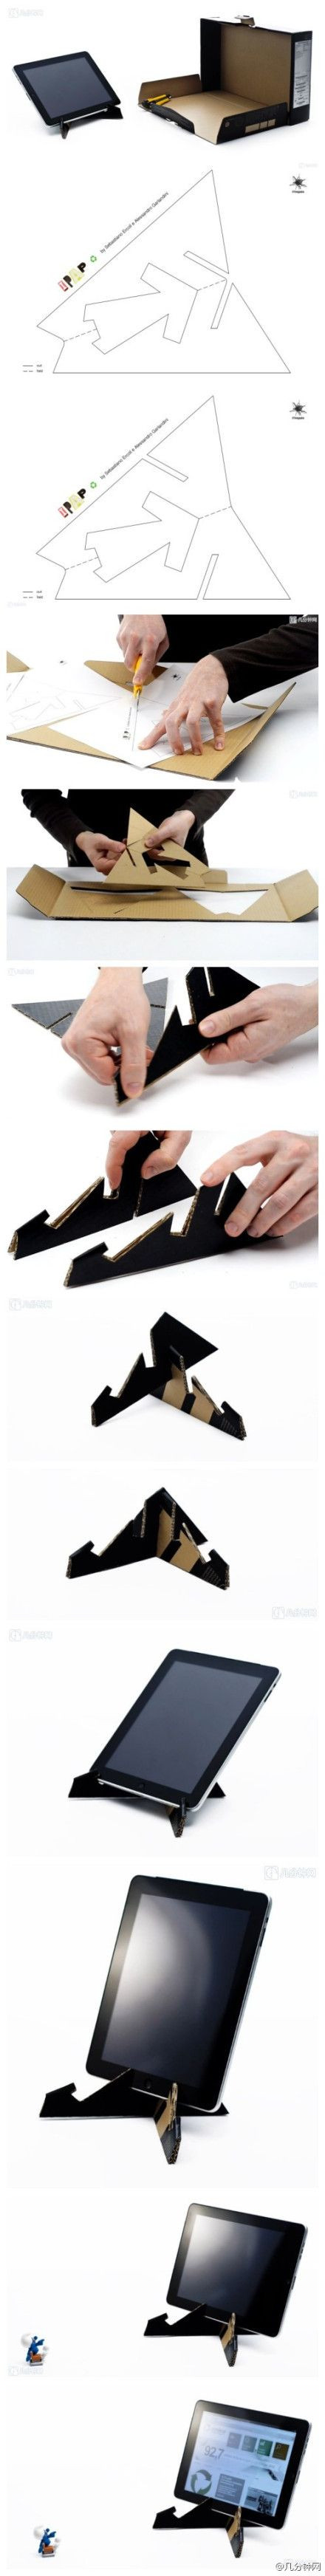 Best ideas about DIY Tablet Stand Cardboard . Save or Pin Tablet stand Diy cardboard and DIY and crafts on Pinterest Now.